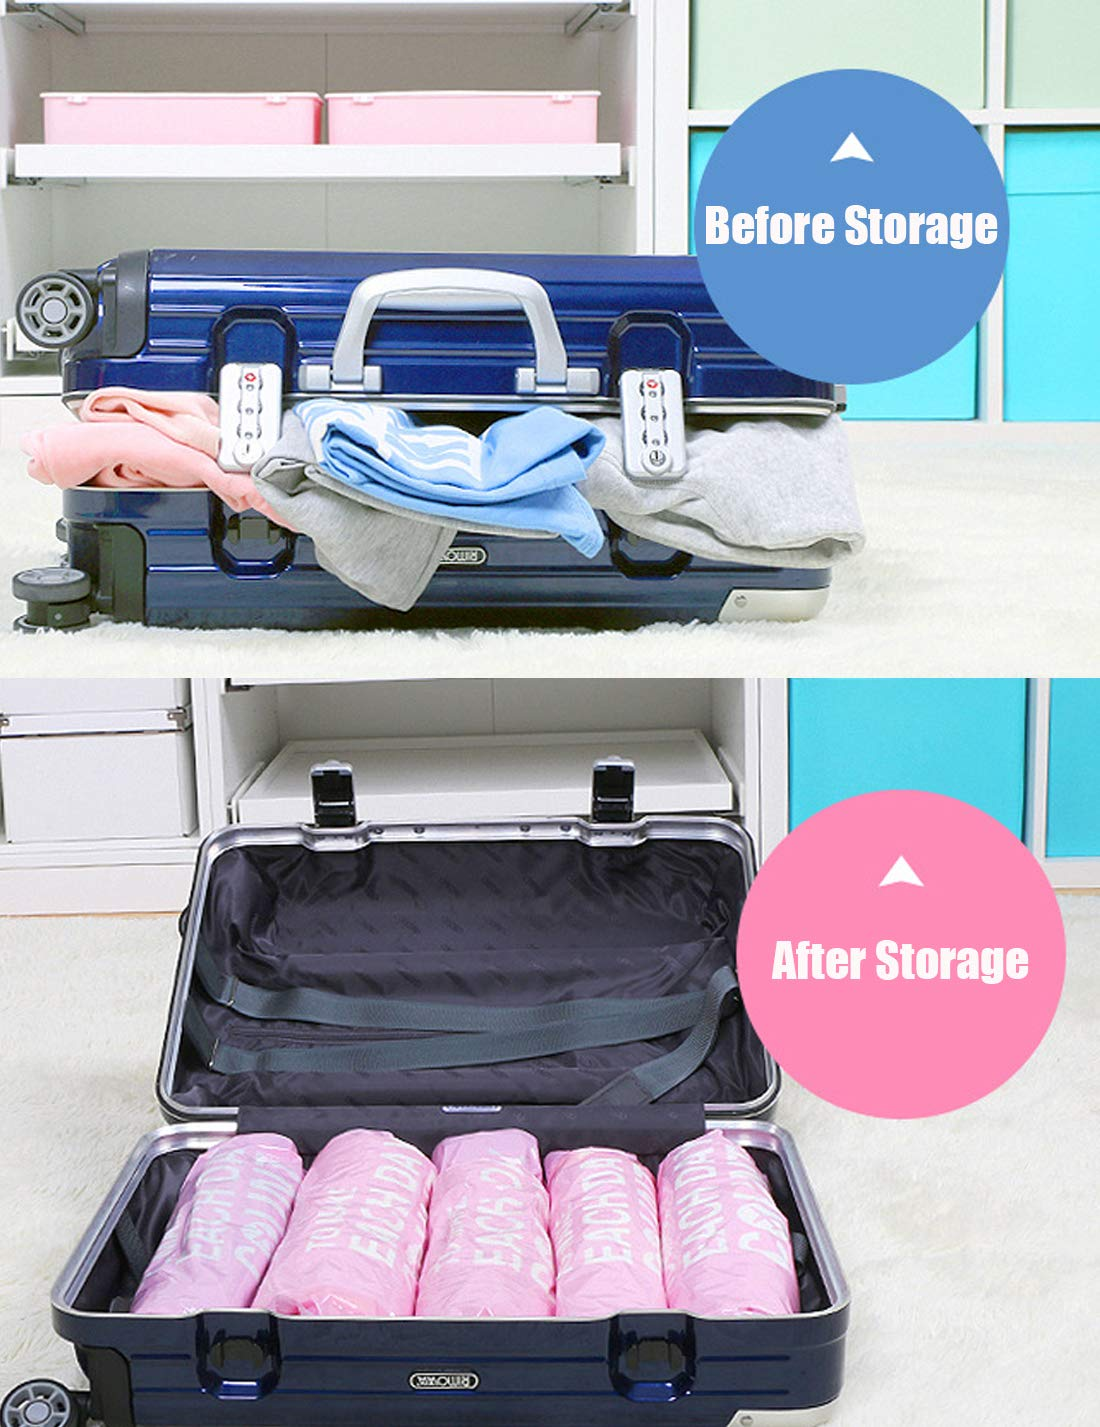 Newlight66 Vacuum Storage Bags, Clothing Storage Bags Compression Bag/Travel / Business Trip for Household Use Dustproof Reusable Vacuum Sealer Bags